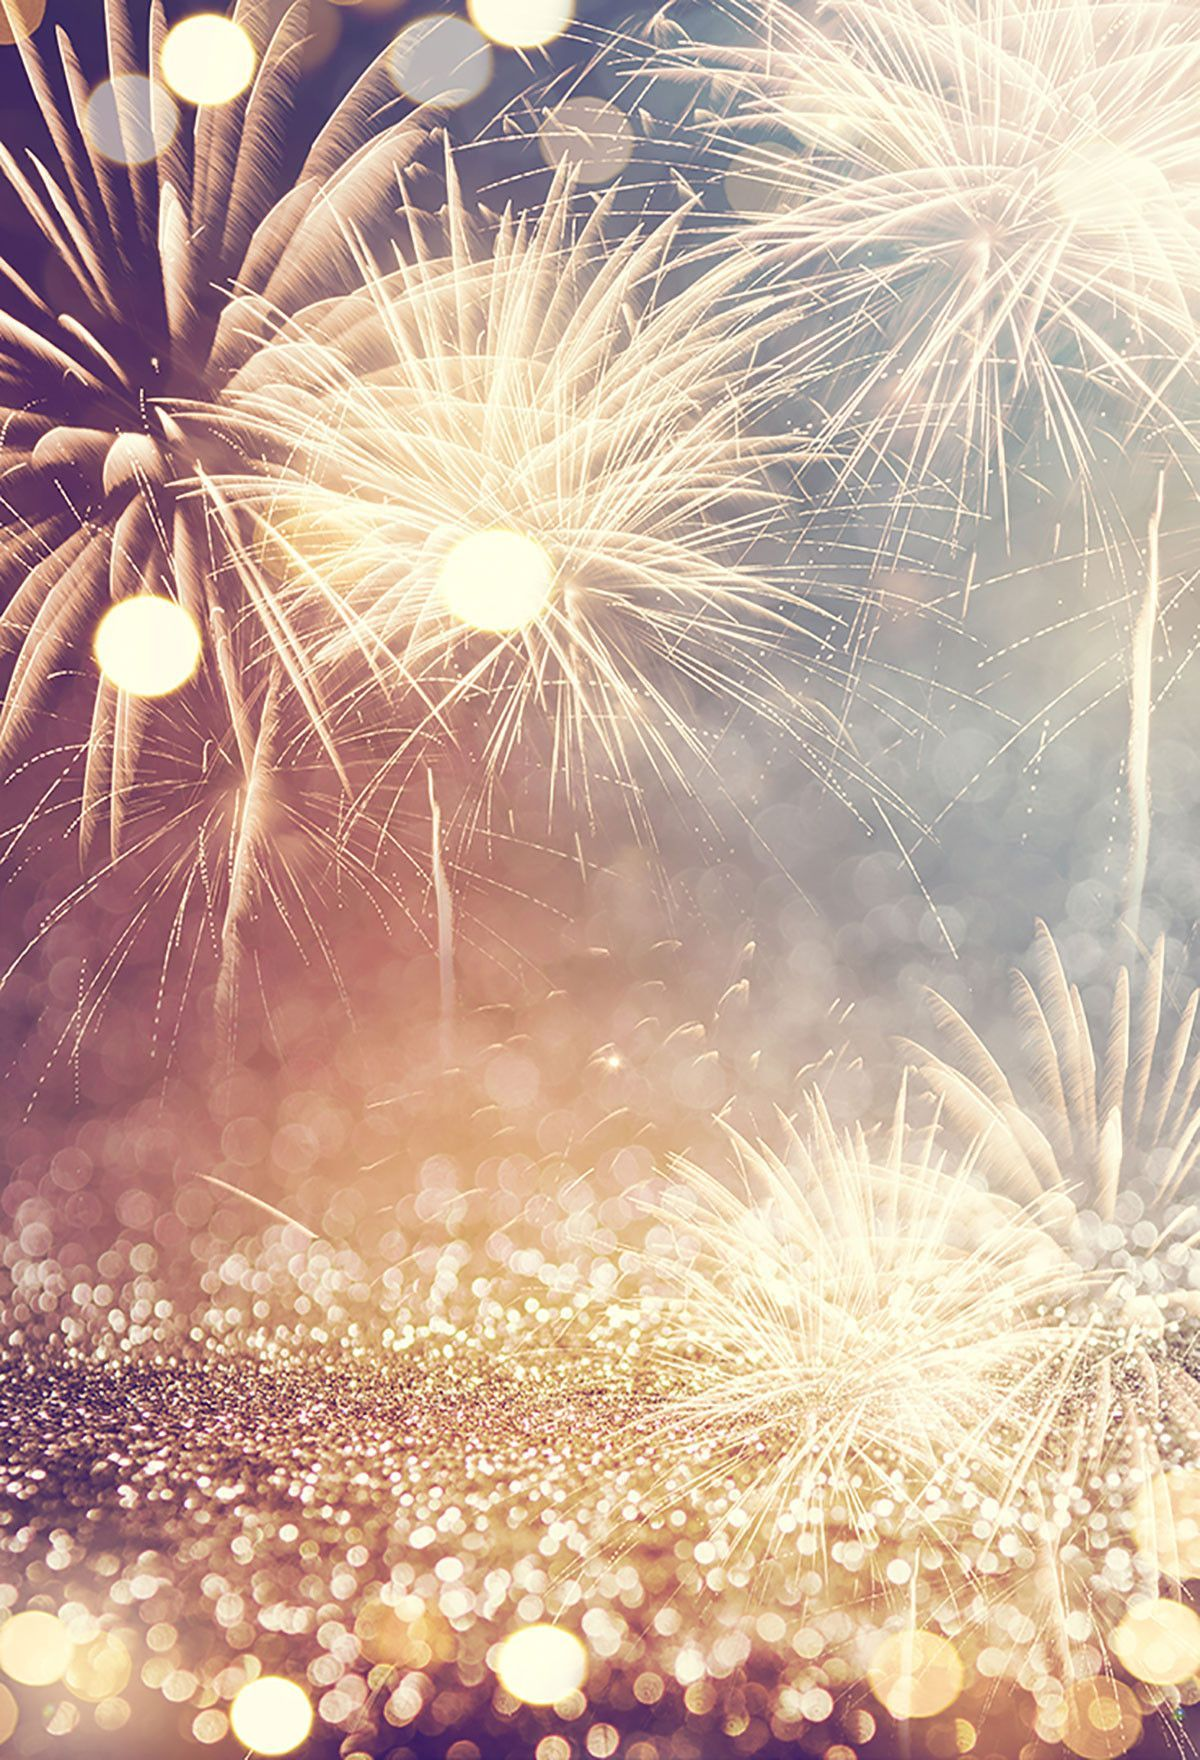 bokeh blurred backdrops fireworks background diy backdrops j04057 in